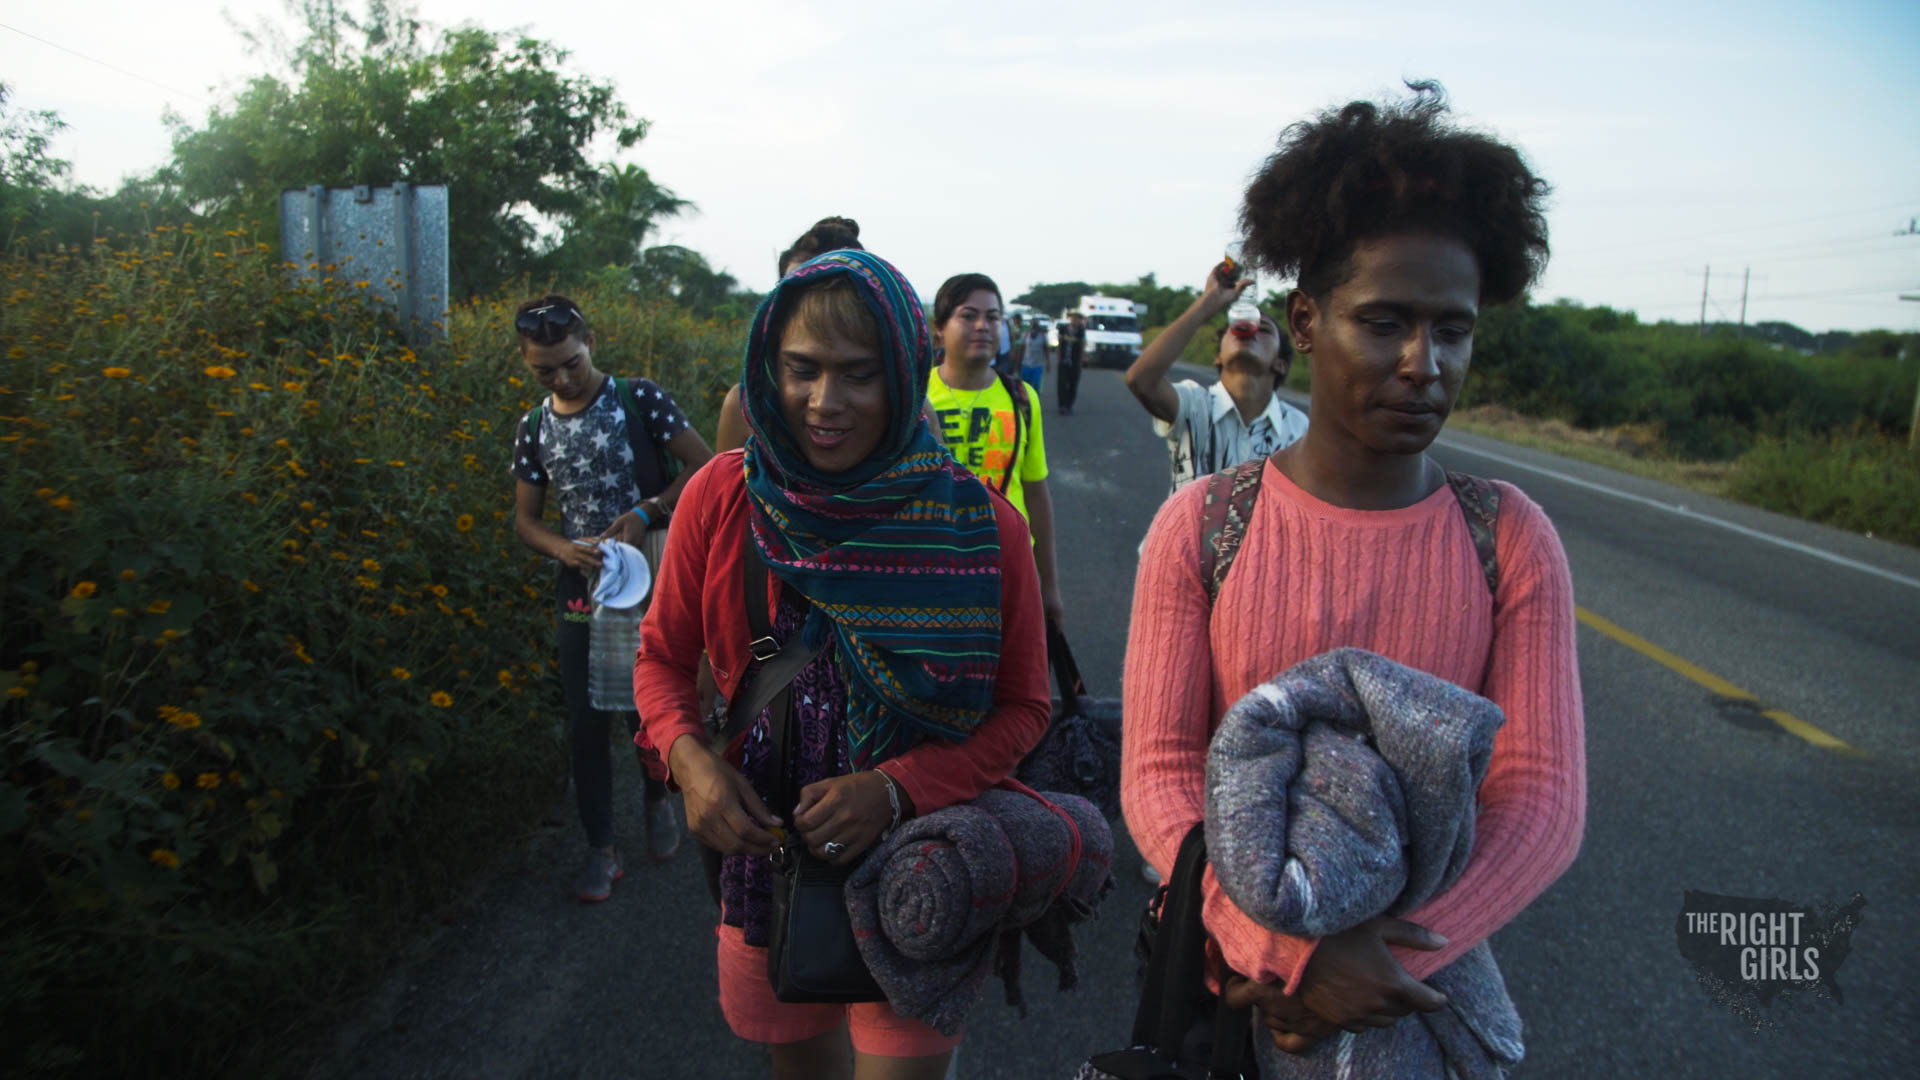 Women walking along road trying to hitch rides as they go.